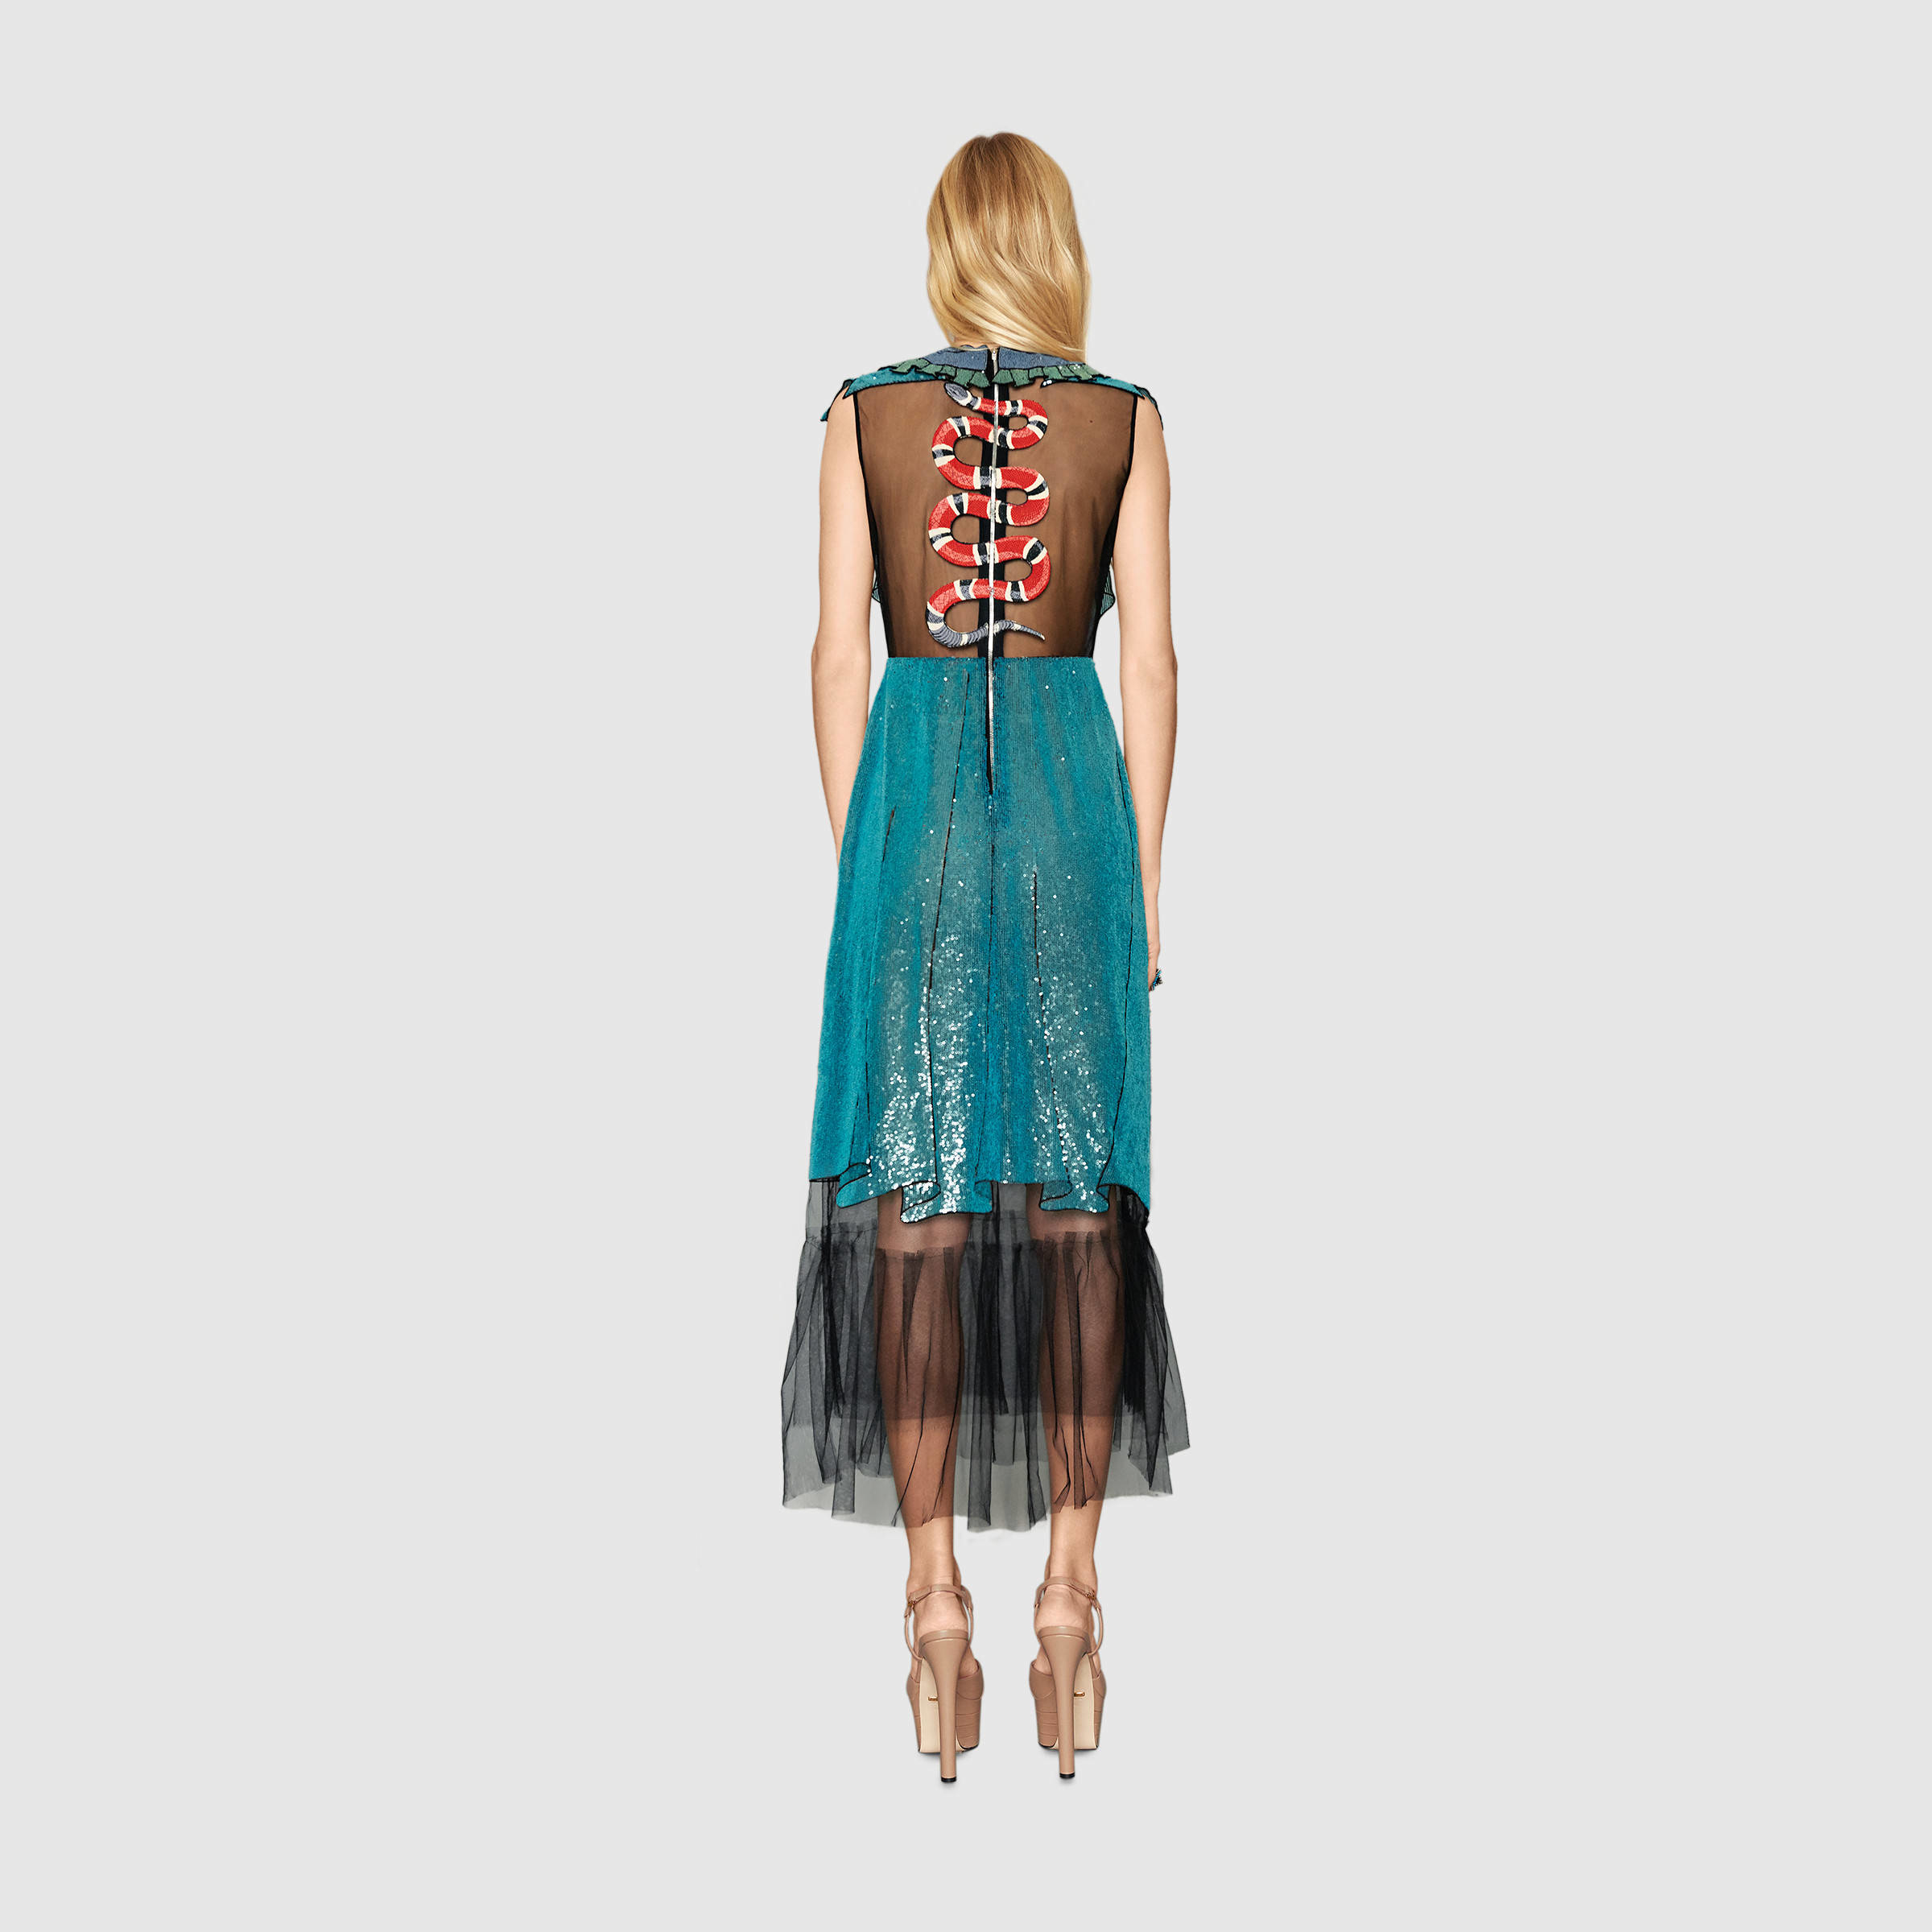 cd7f3e27cf3 Gucci Embroidered Tulle Dress in Blue - Lyst